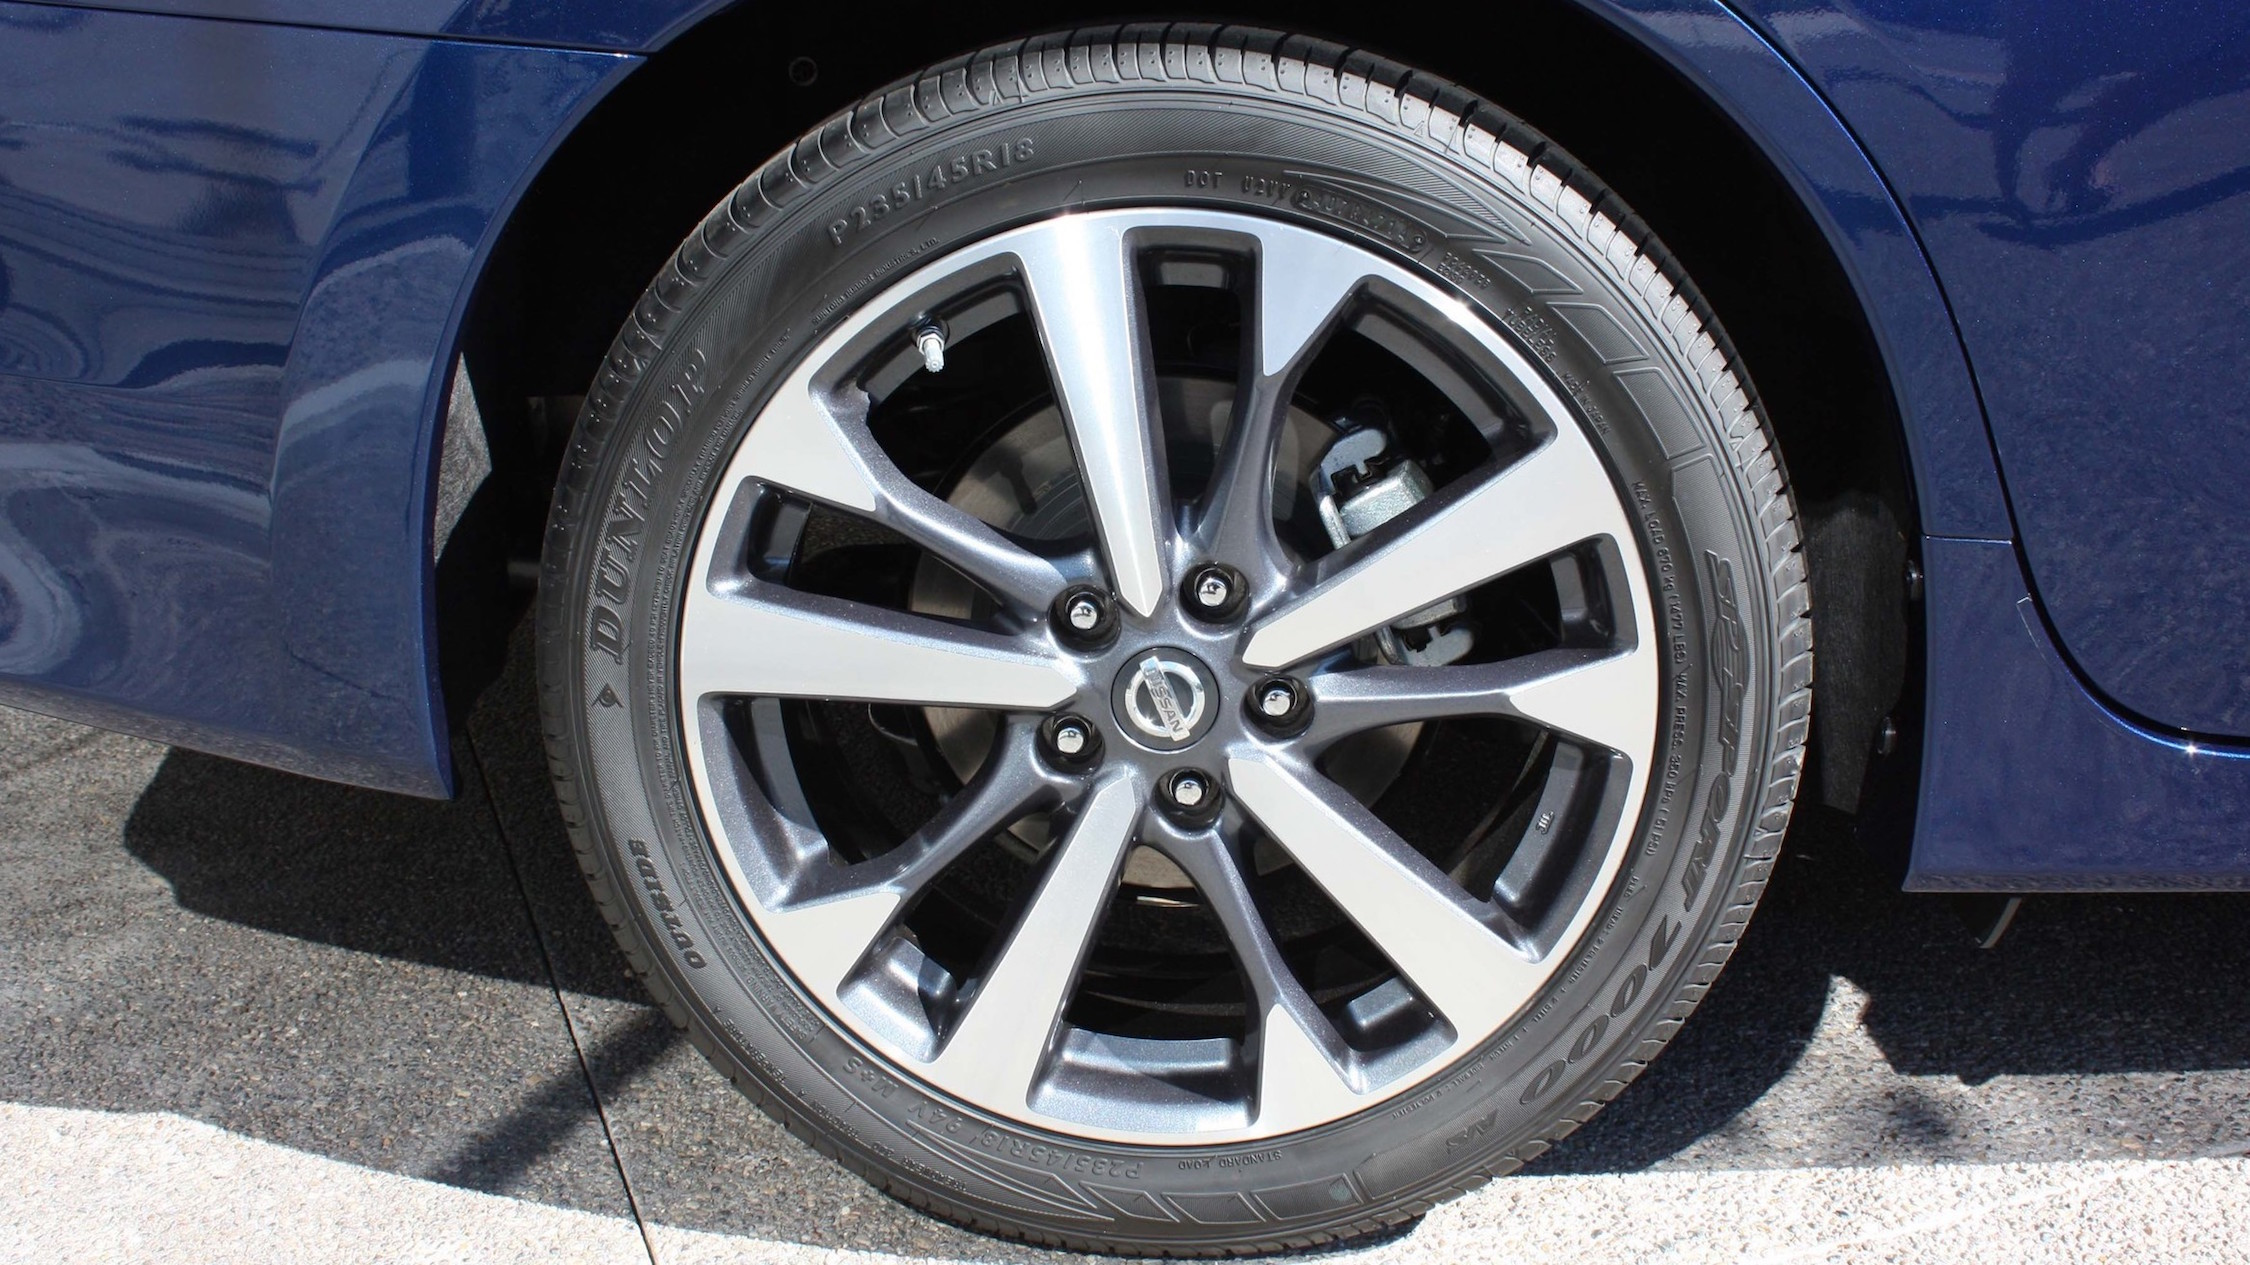 2016 Nissan Altima Exterior Wheel (View 3 of 20)